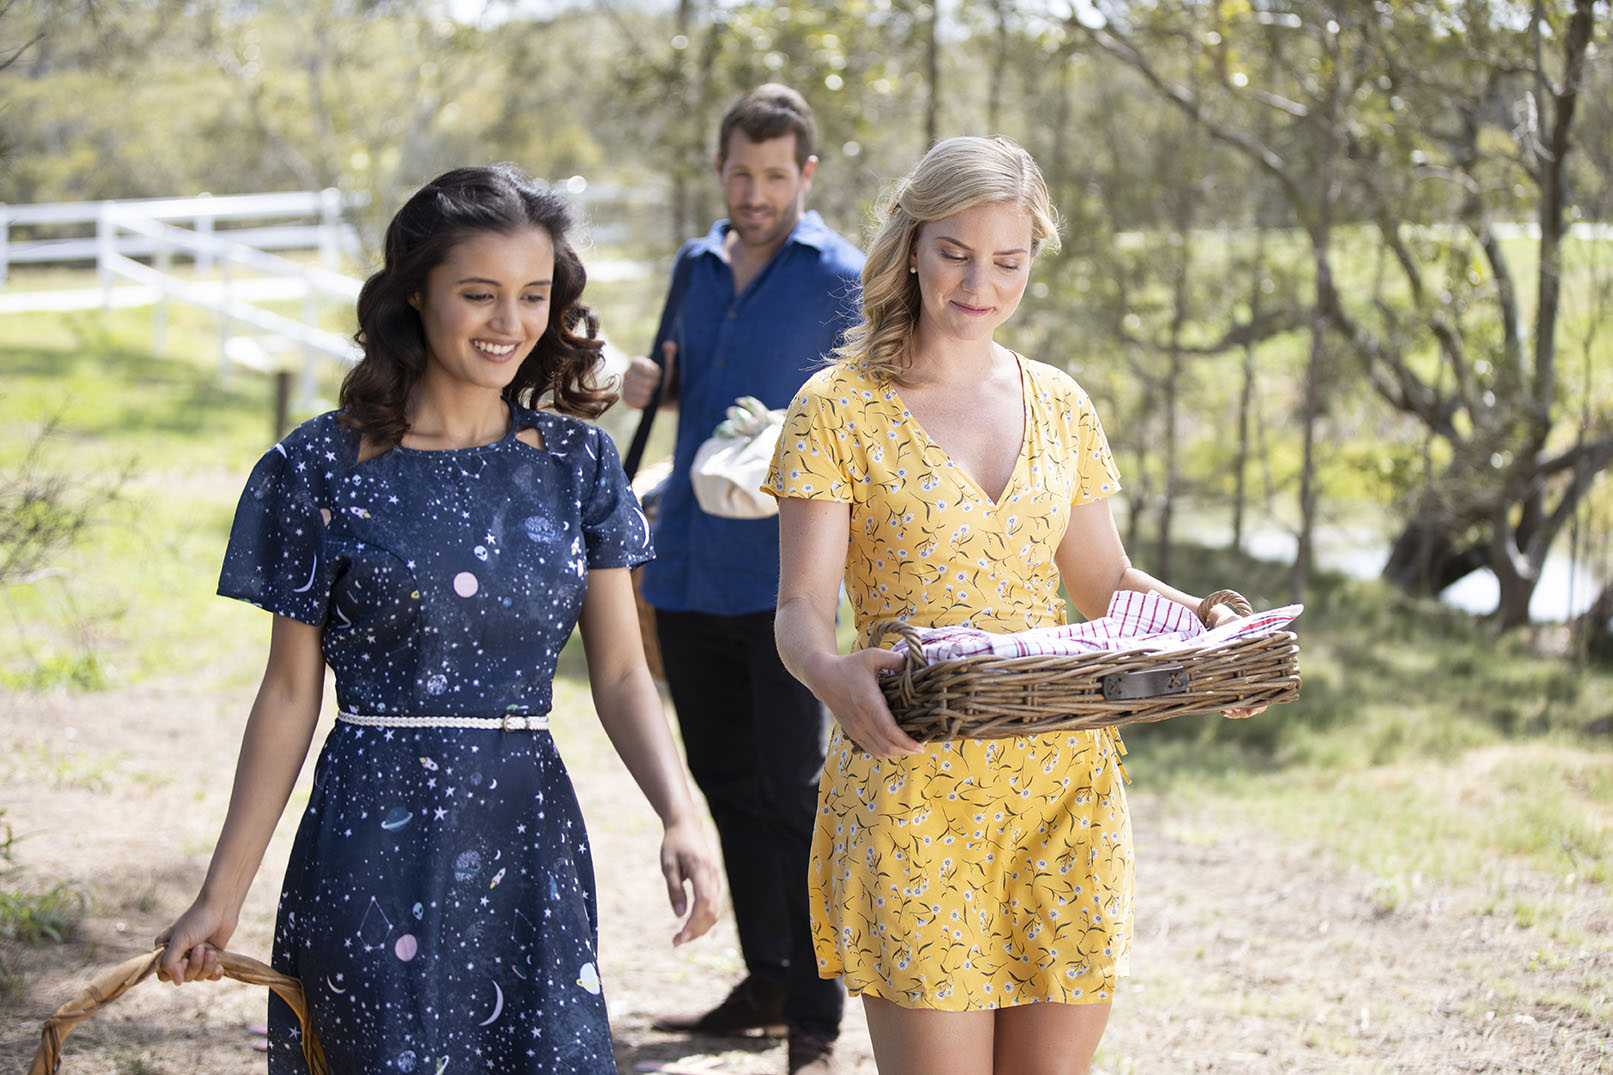 Cindy Busby, Naomi Sequeira, and Tim Ross in Romance on the Menu (2020)